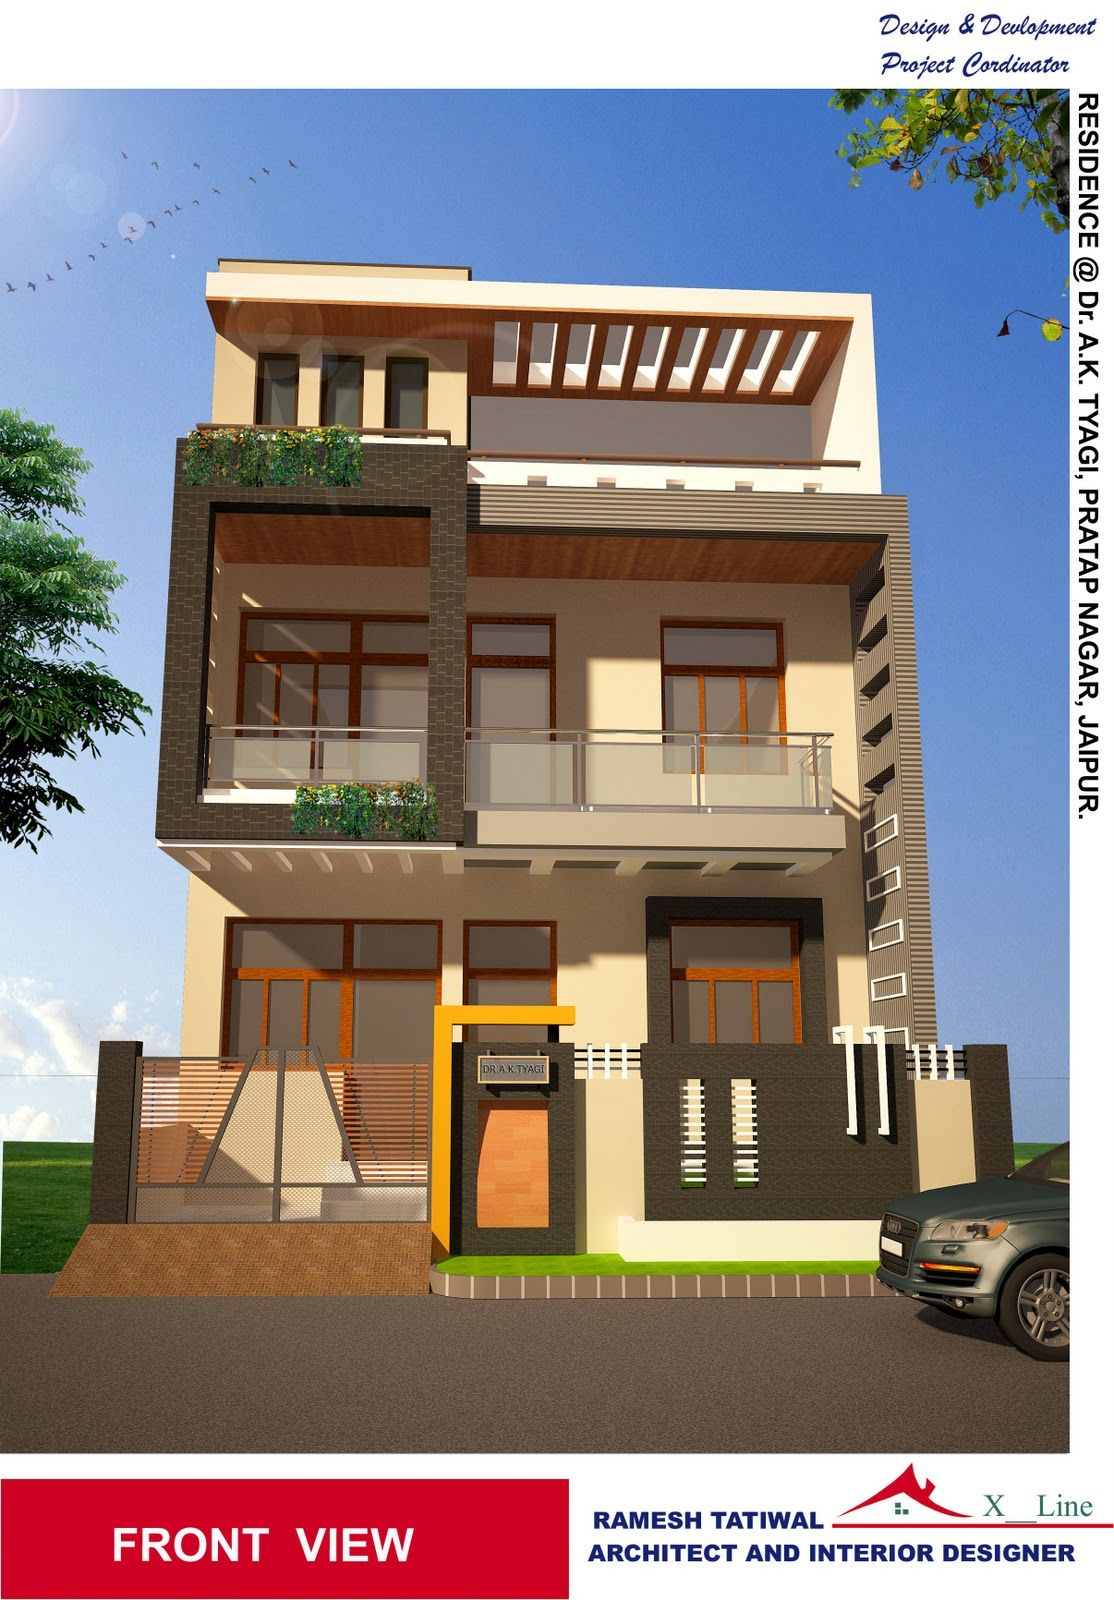 Housedesigns modern indian home architecture design from for Home and land design